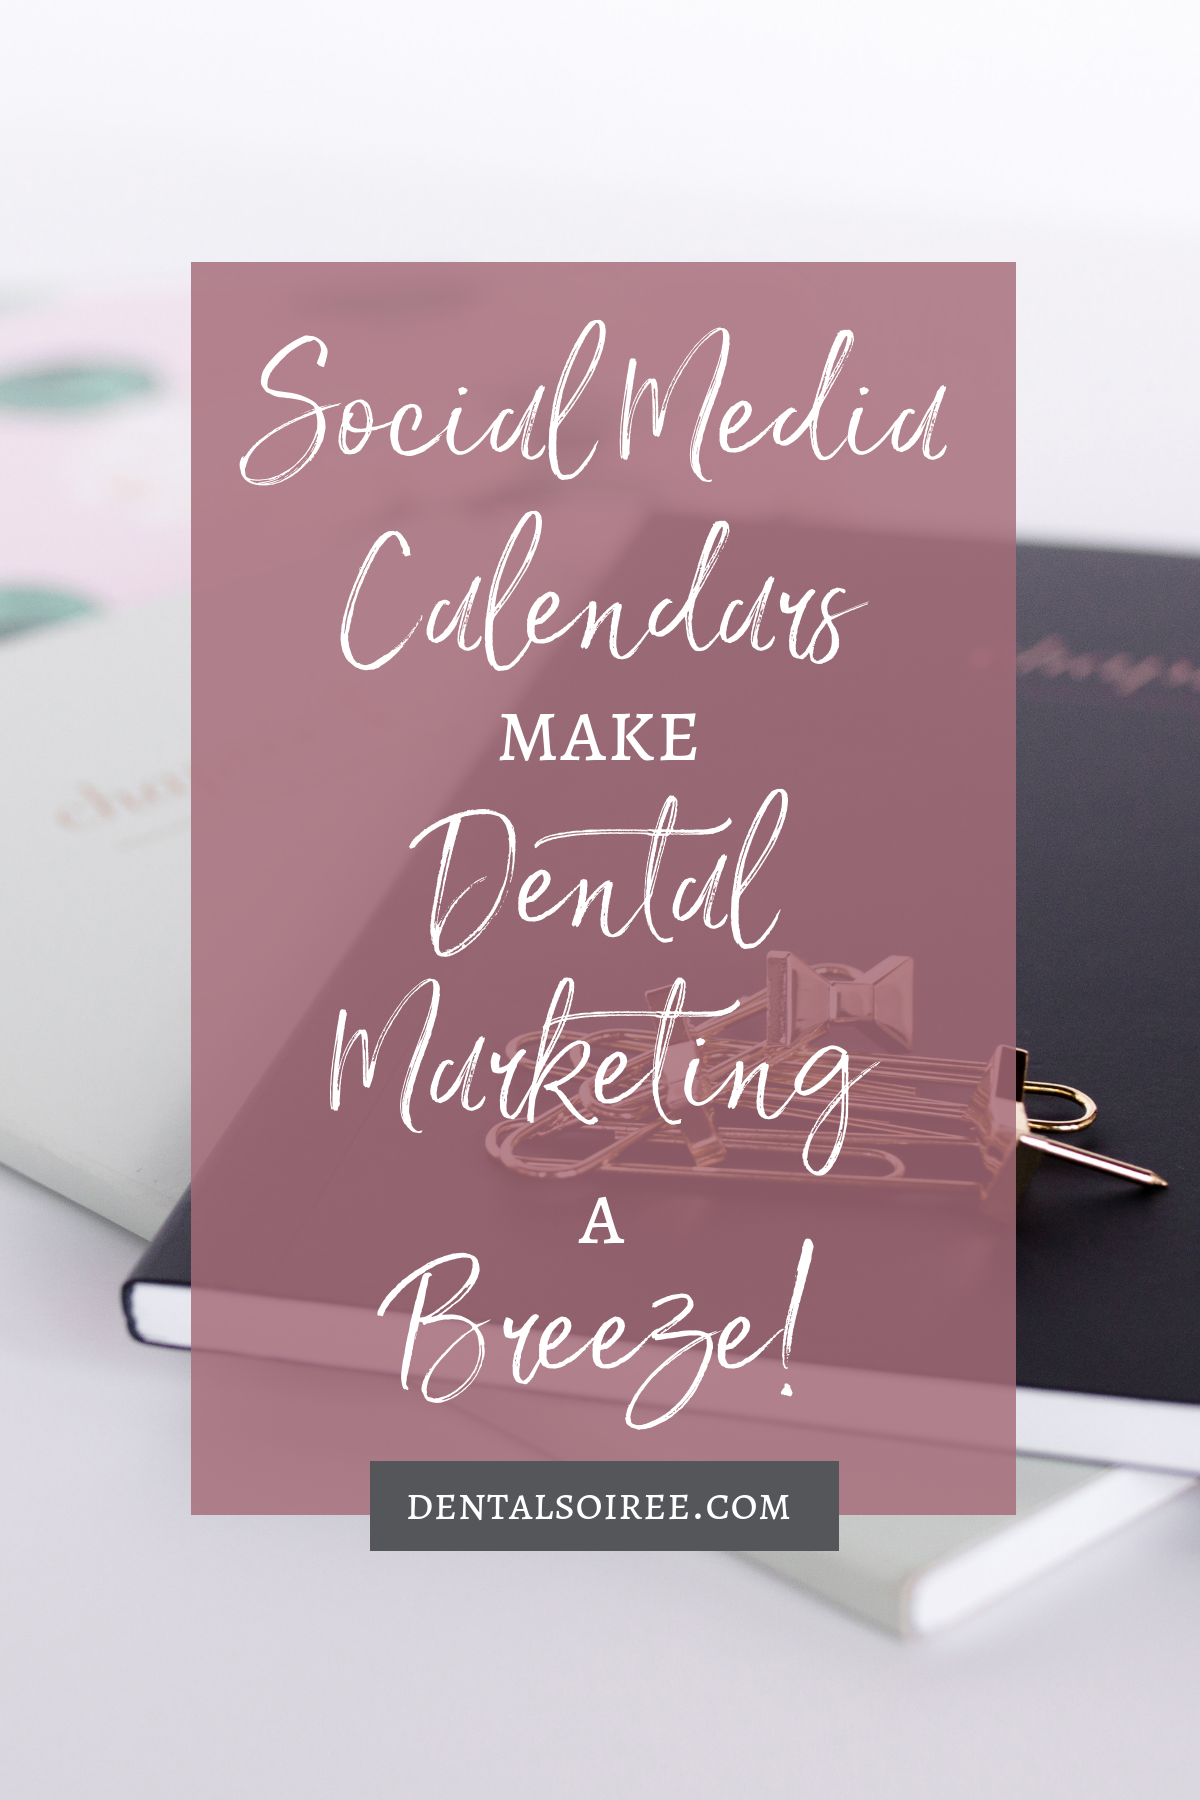 A Social Media Calendar Makes Dental Marketing a Breeze!